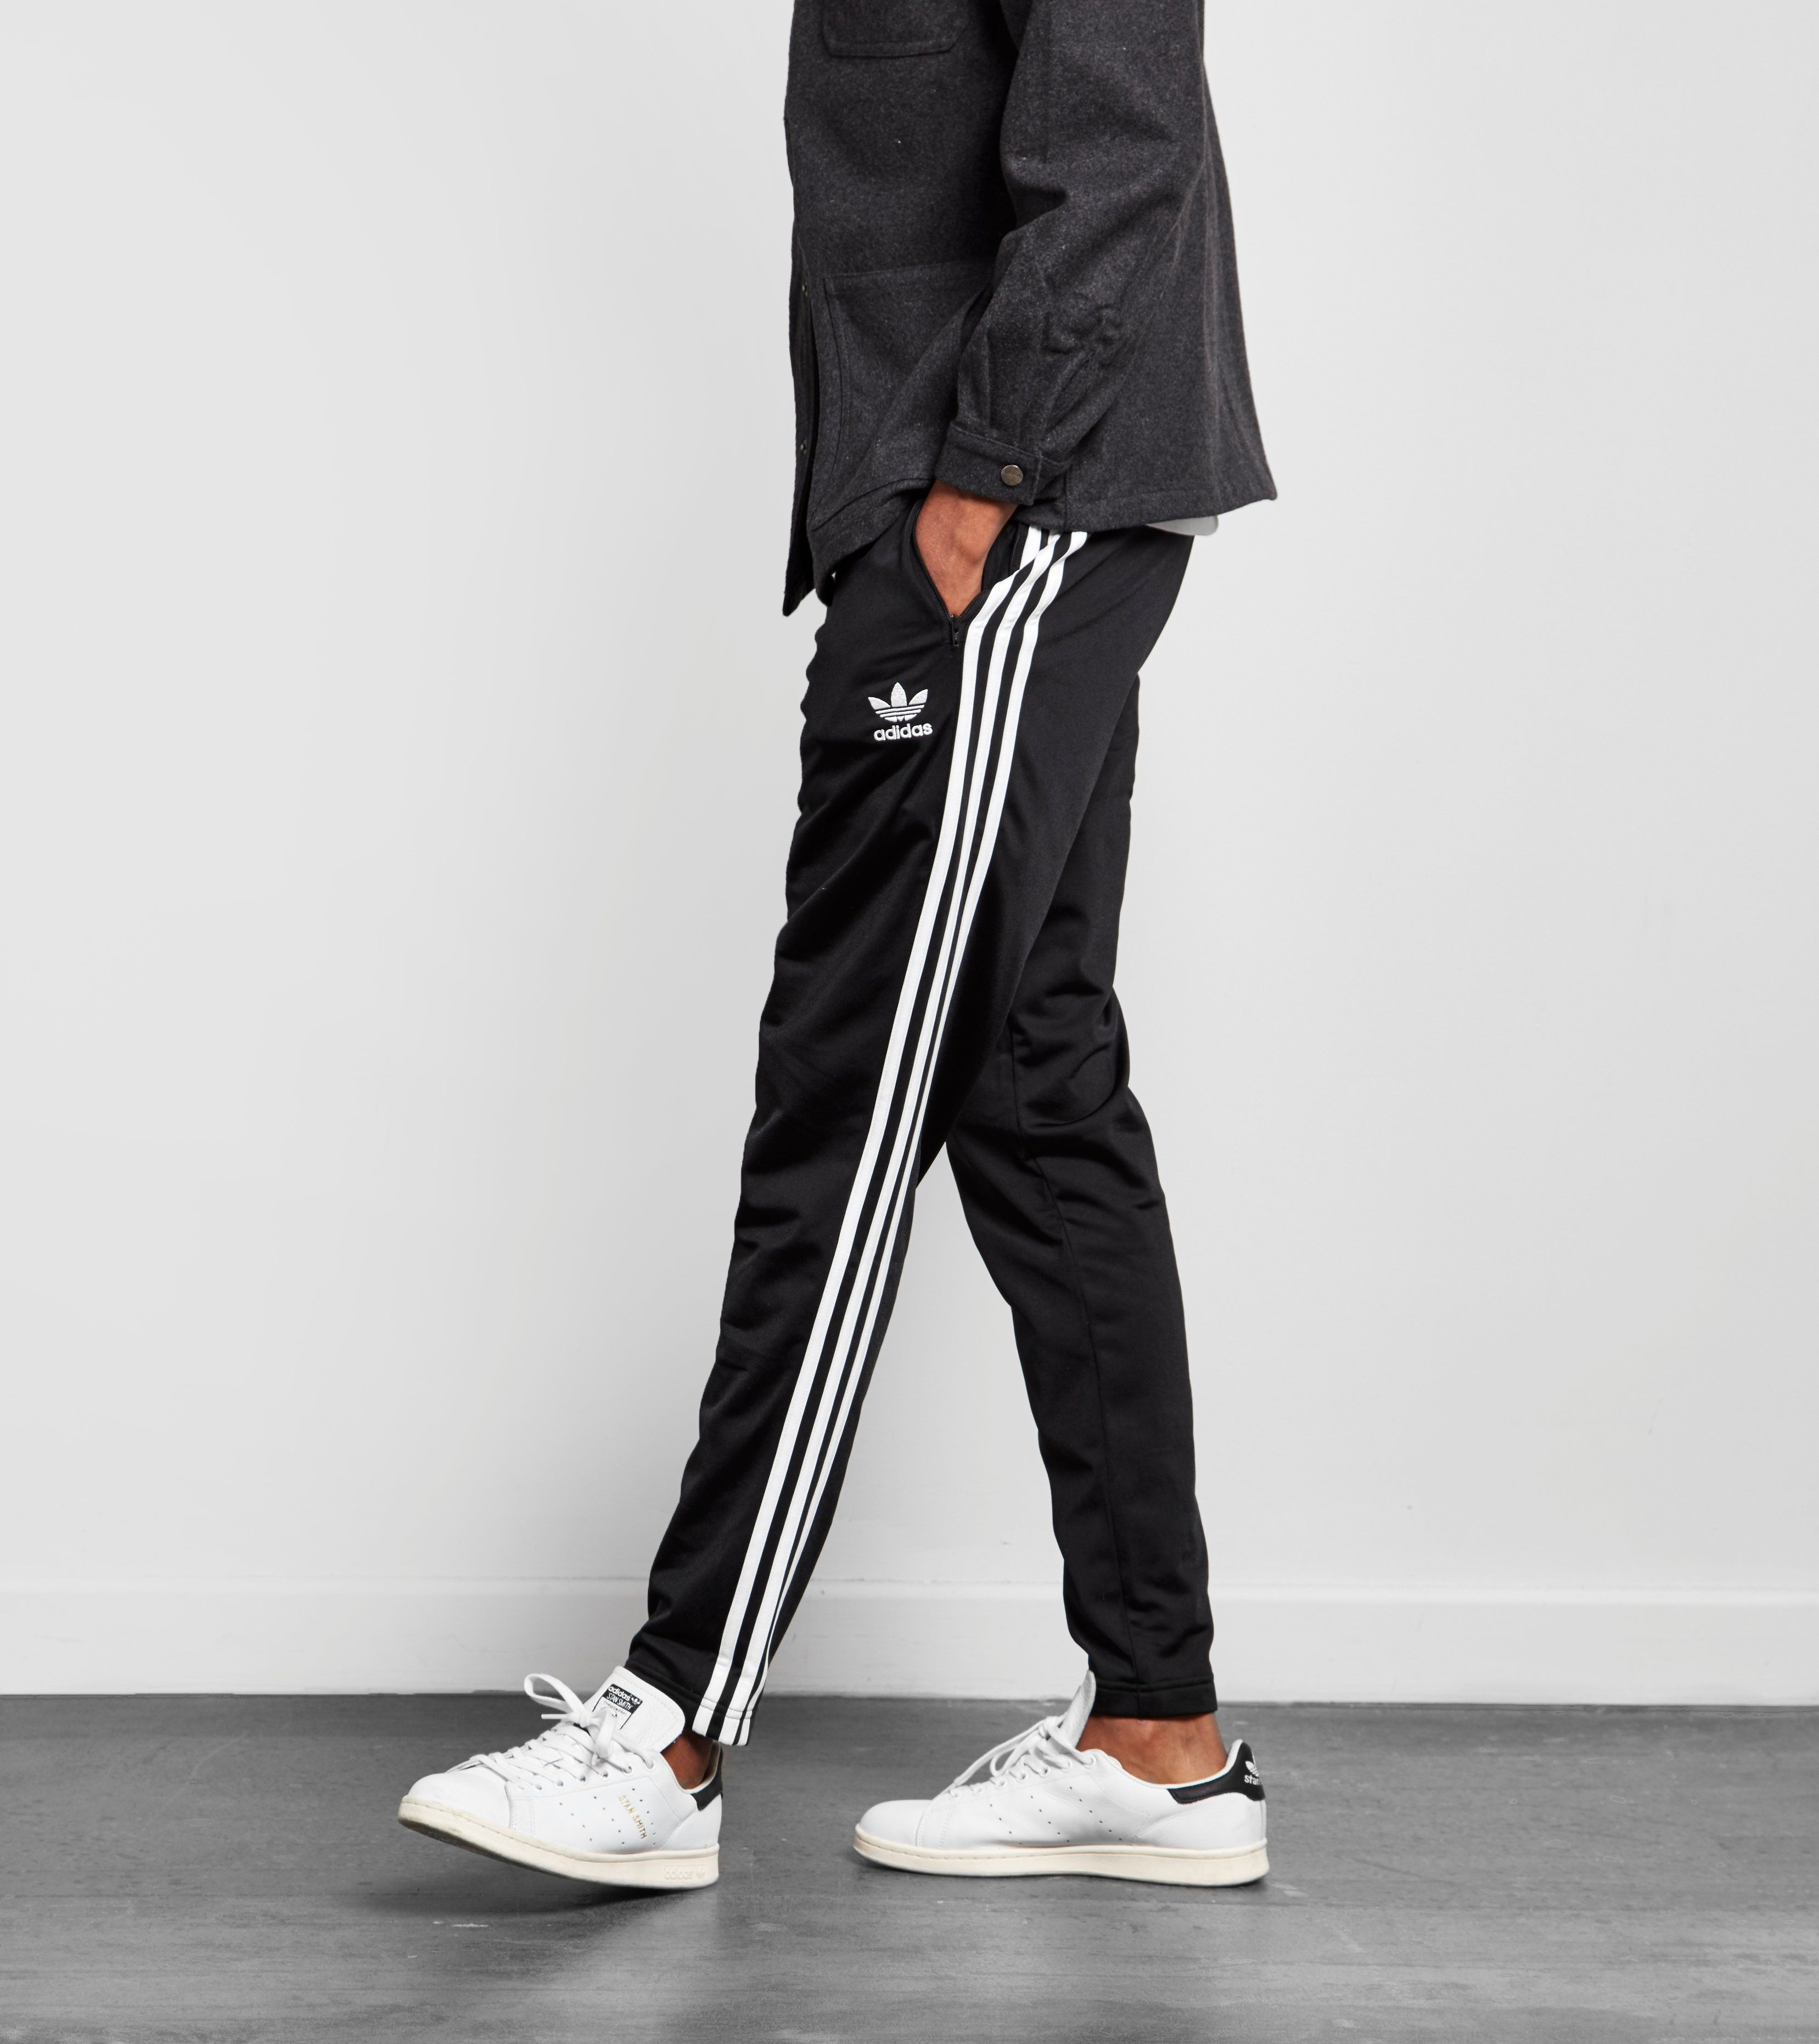 buy popular 8d696 90b0c adidas Originals Superstar Taper Track Pants - find out more on our site.  Find the freshest in trainers and clothing online now.